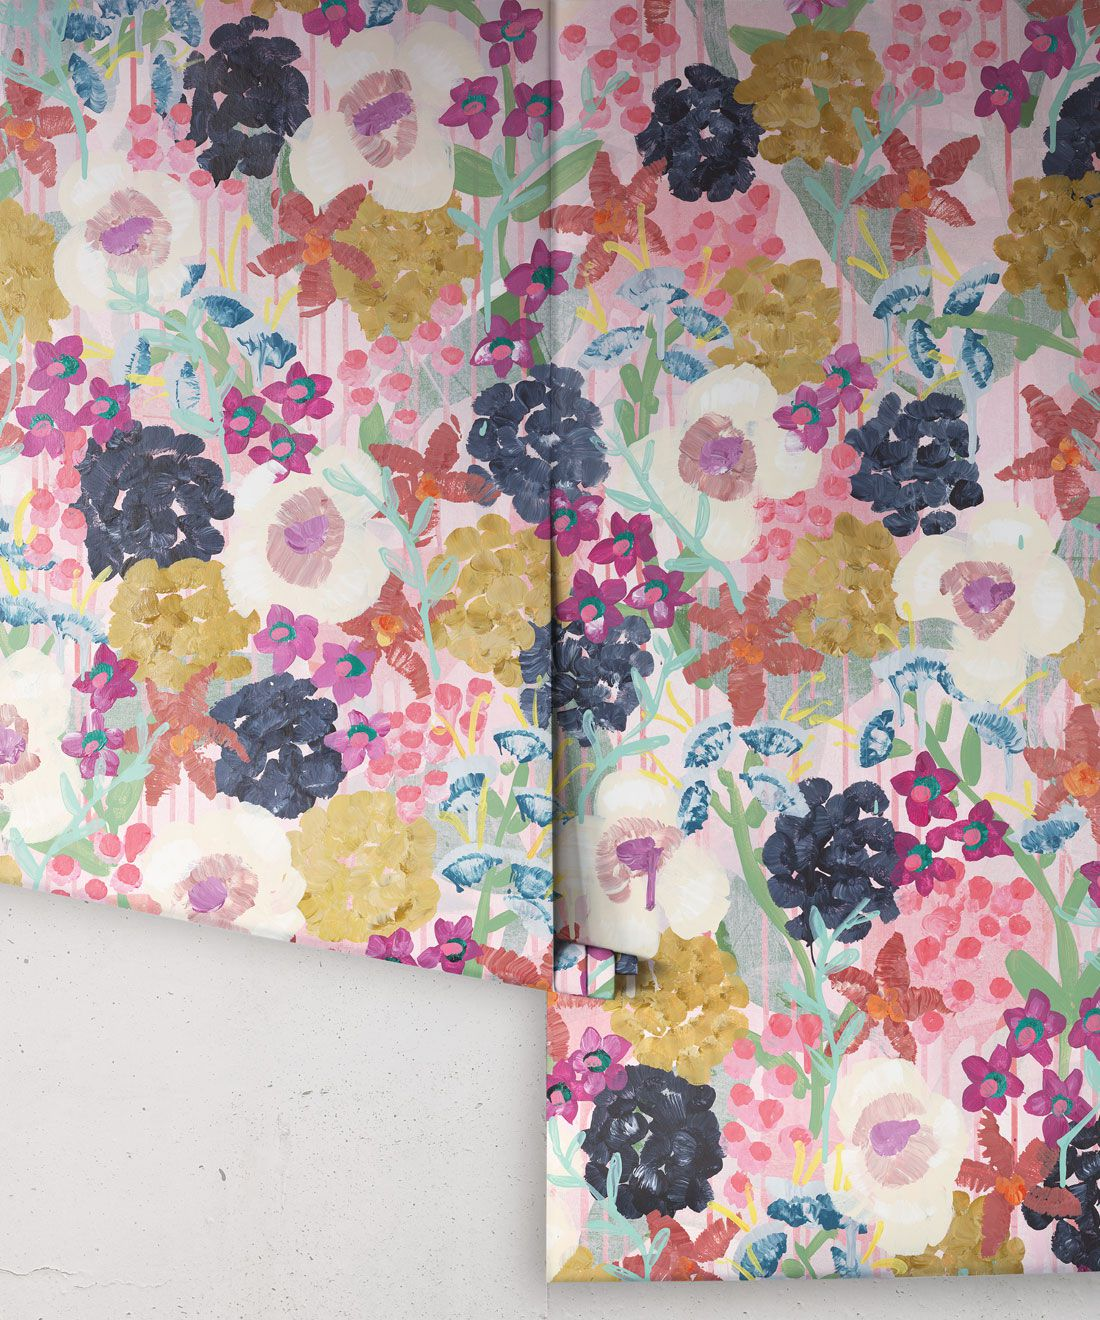 Garden State Wallpaper •Colorful Floral Wallpaper • Tiff Manuell • Abstract Expressionist Wallpaper • rolls